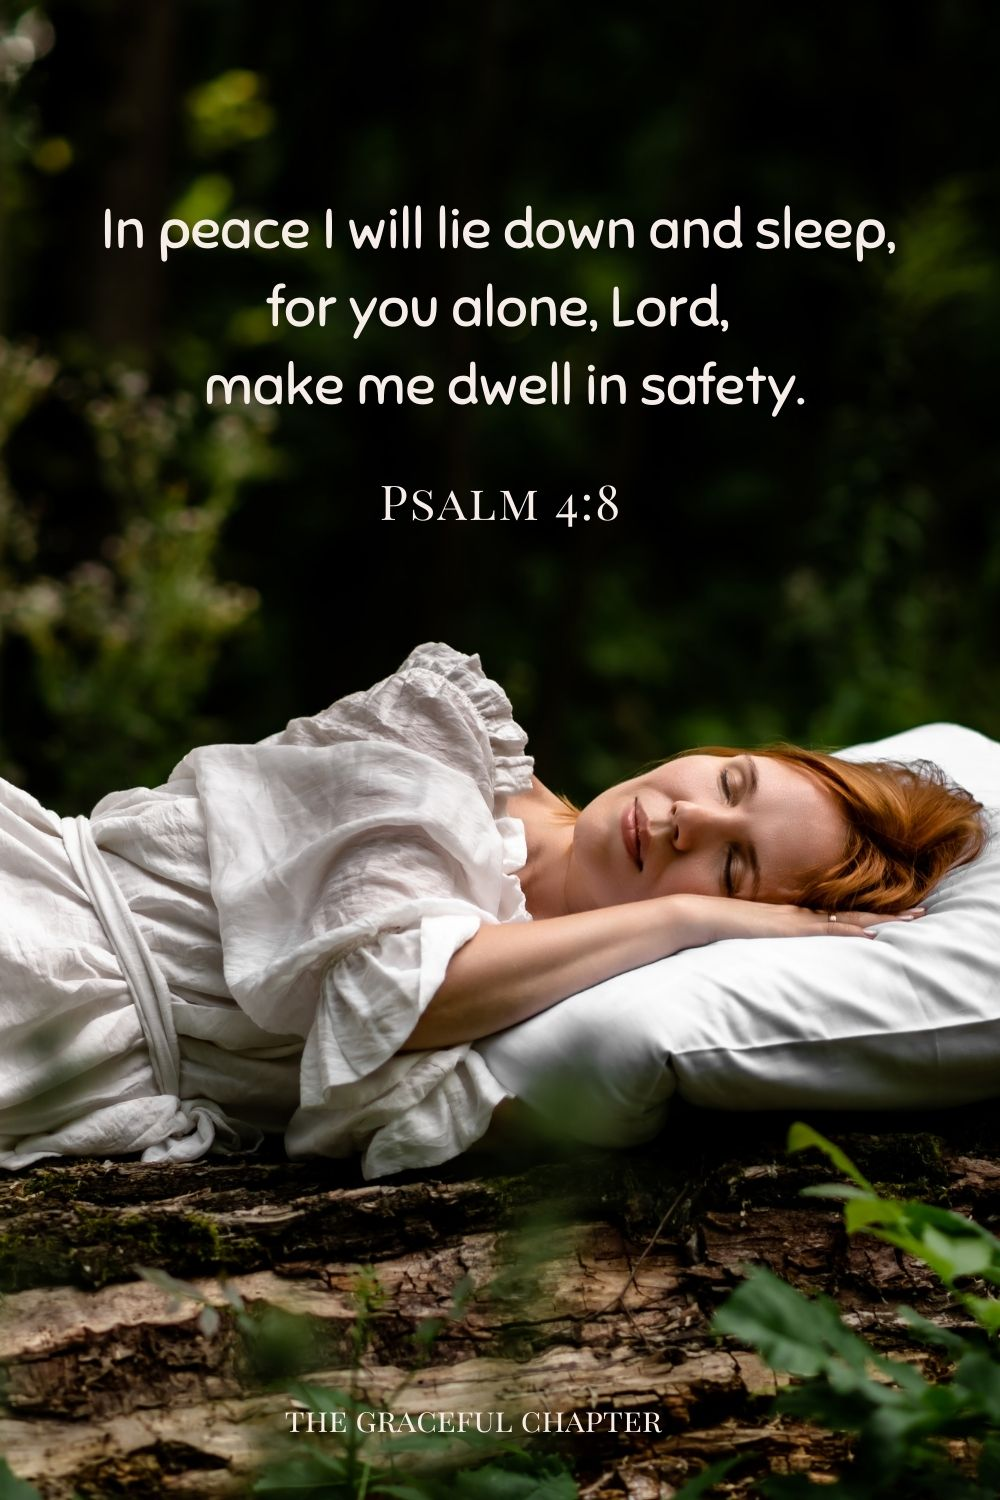 comforting bedtime bible verses- In peace, I will lie down and sleep, for you alone, Lord, make me dwell in safety. Psalm 4:8